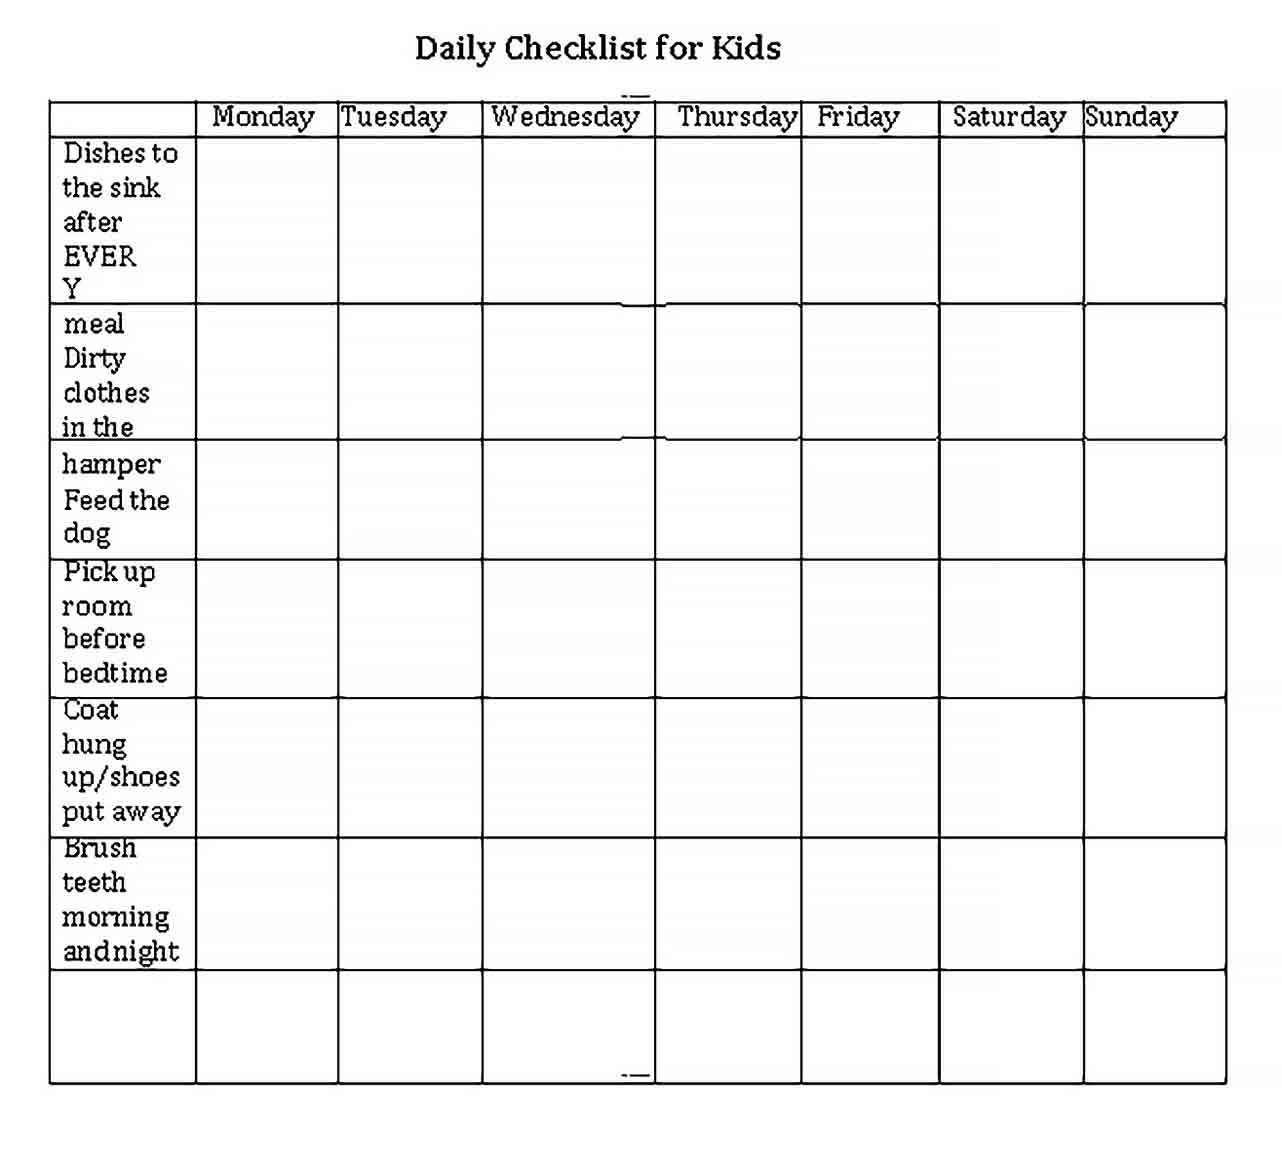 Template Daily Checklist for Kids